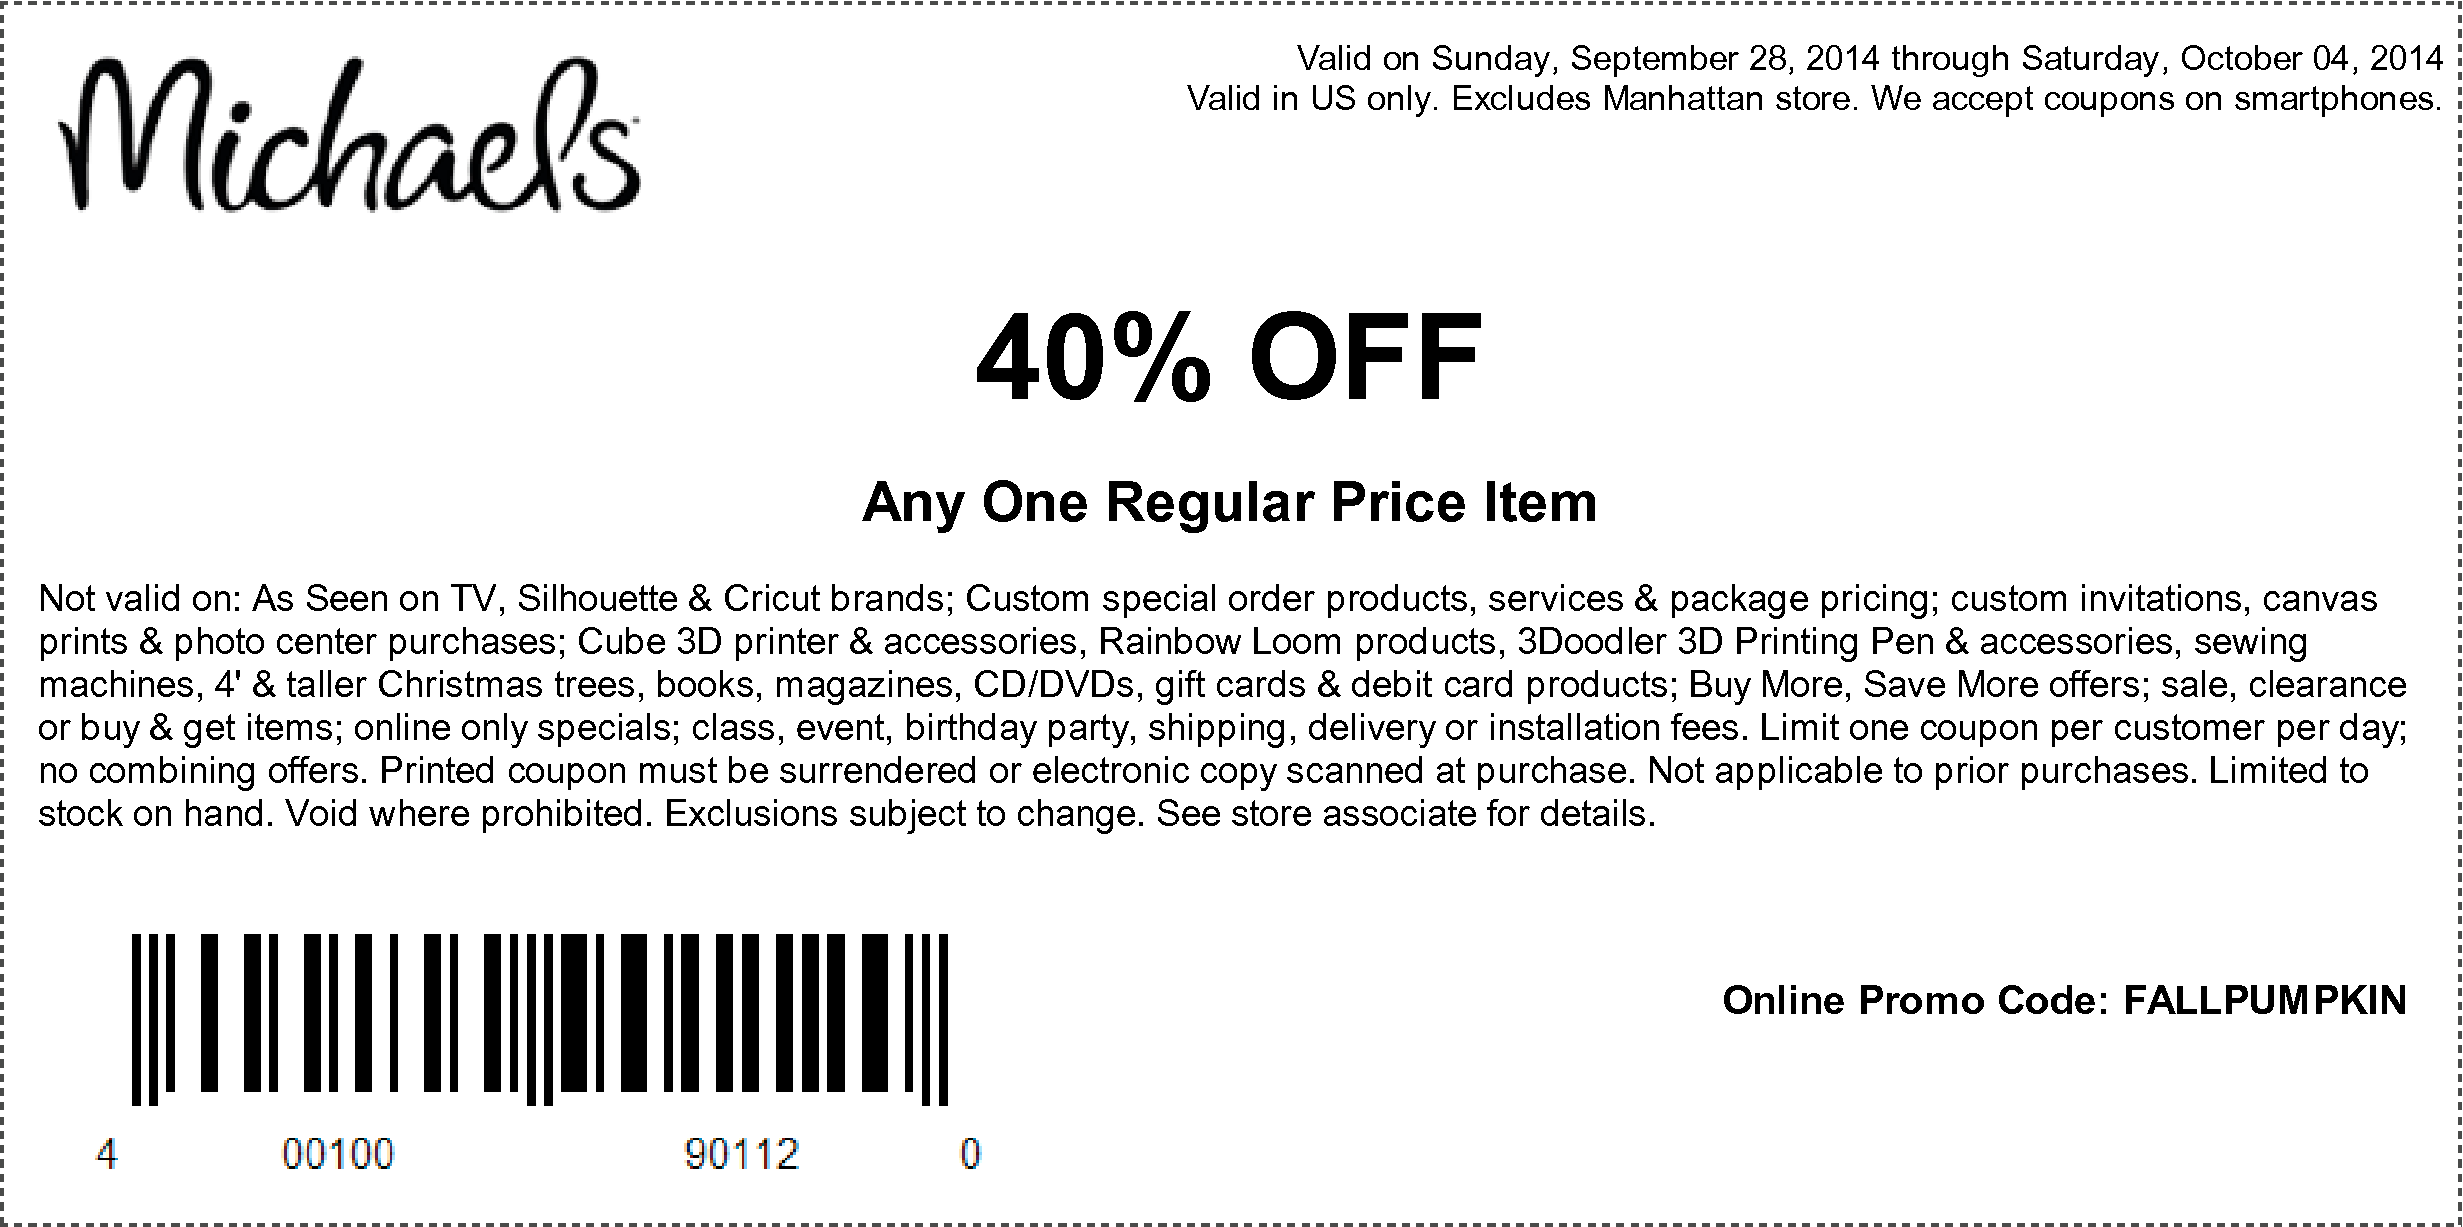 image about Osh Coupons Printable called Oct 2 Retail Roundup - Yankee Candle, Jo-Anns, Get together